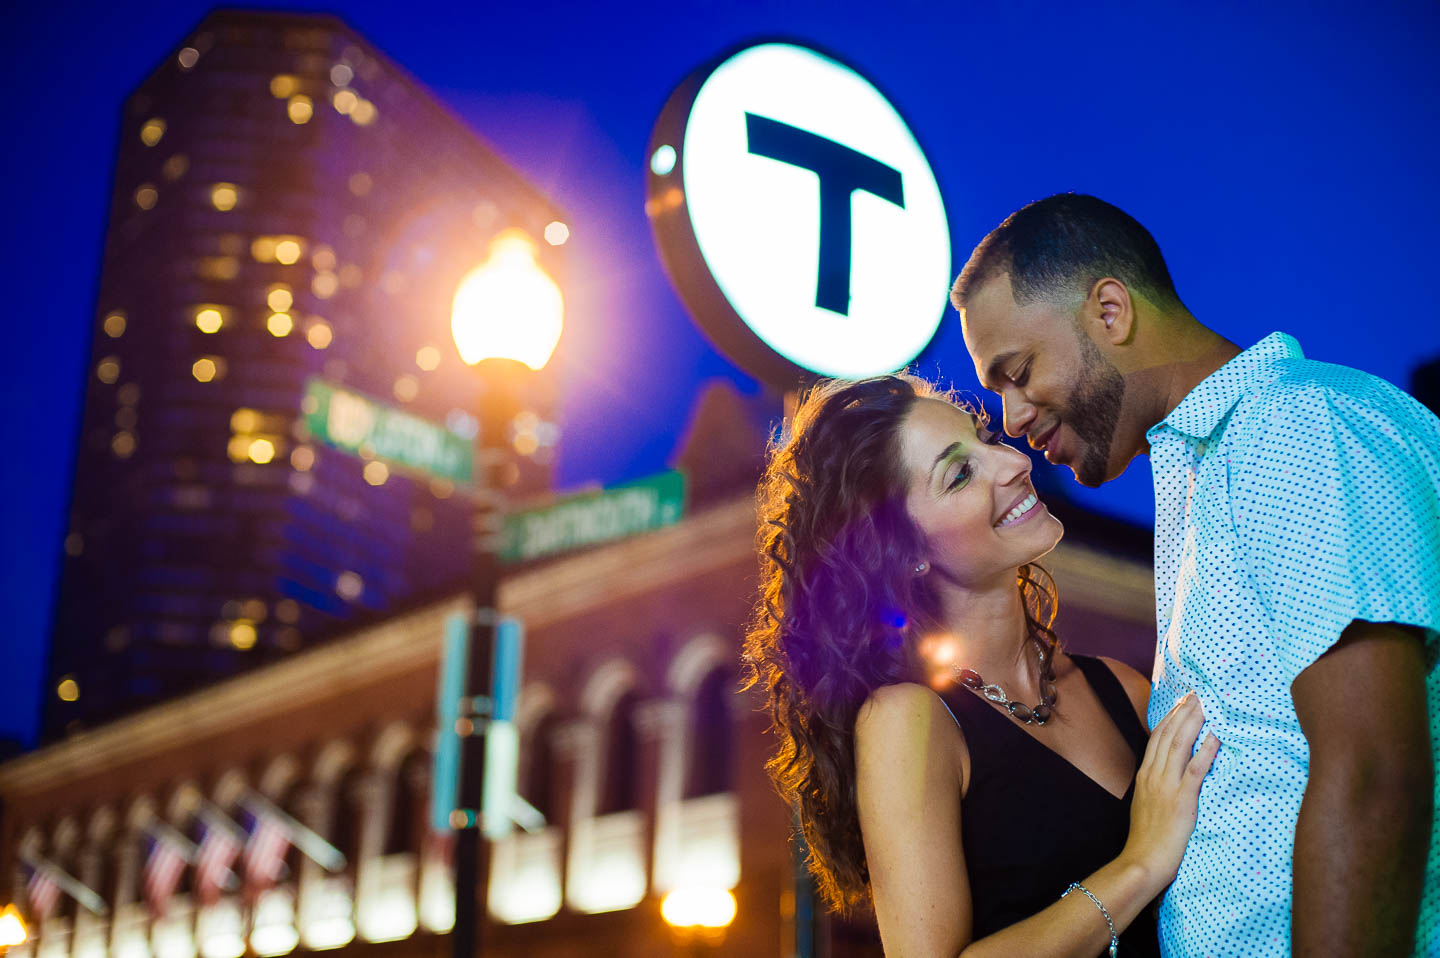 A visibly passionate couple poses near the Copley T stop in Boston Massachusetts with the Boston Public Library in the background at night